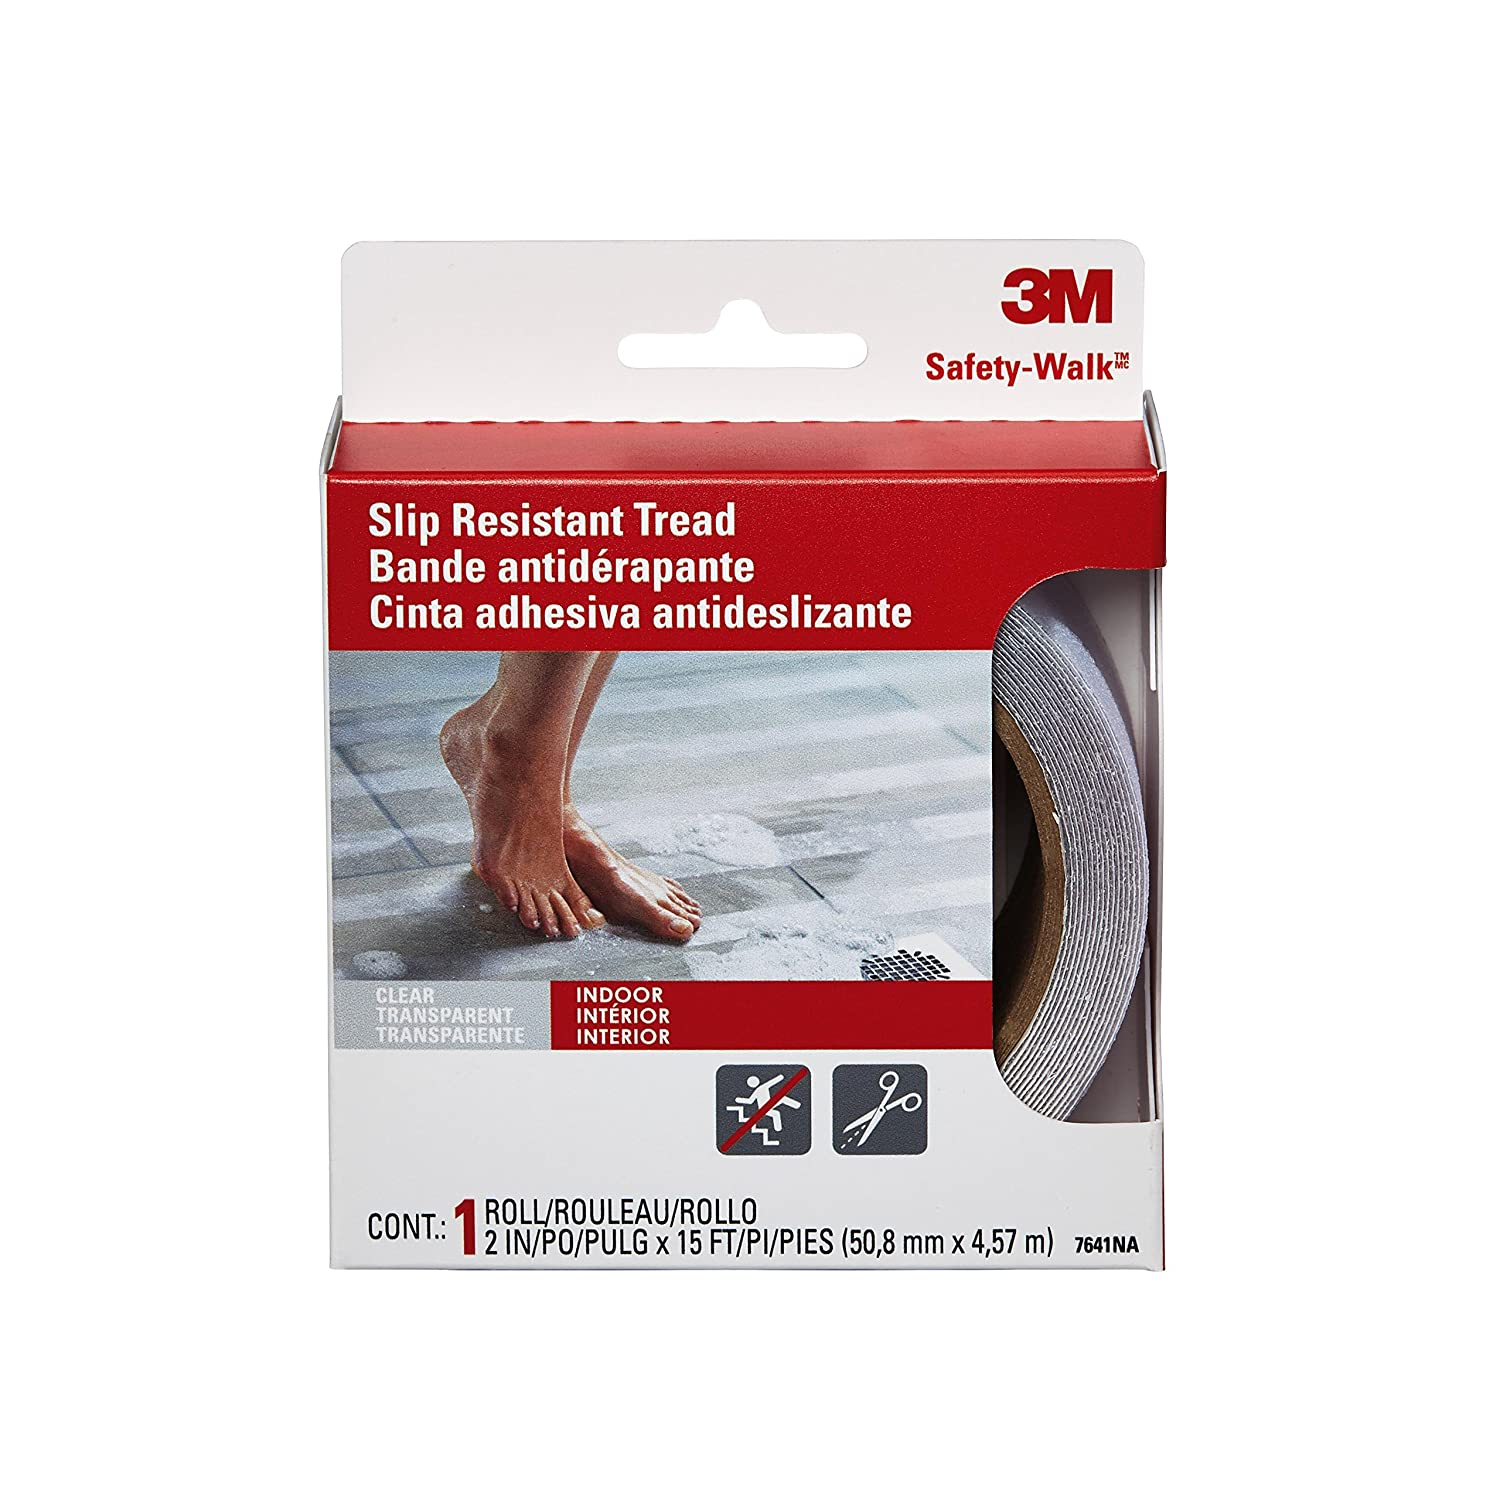 3M Safety-Walk Tub and Shower Tread, Clear, 2-Inch by 180-Inch Roll, 7641NA 3M CHIMD